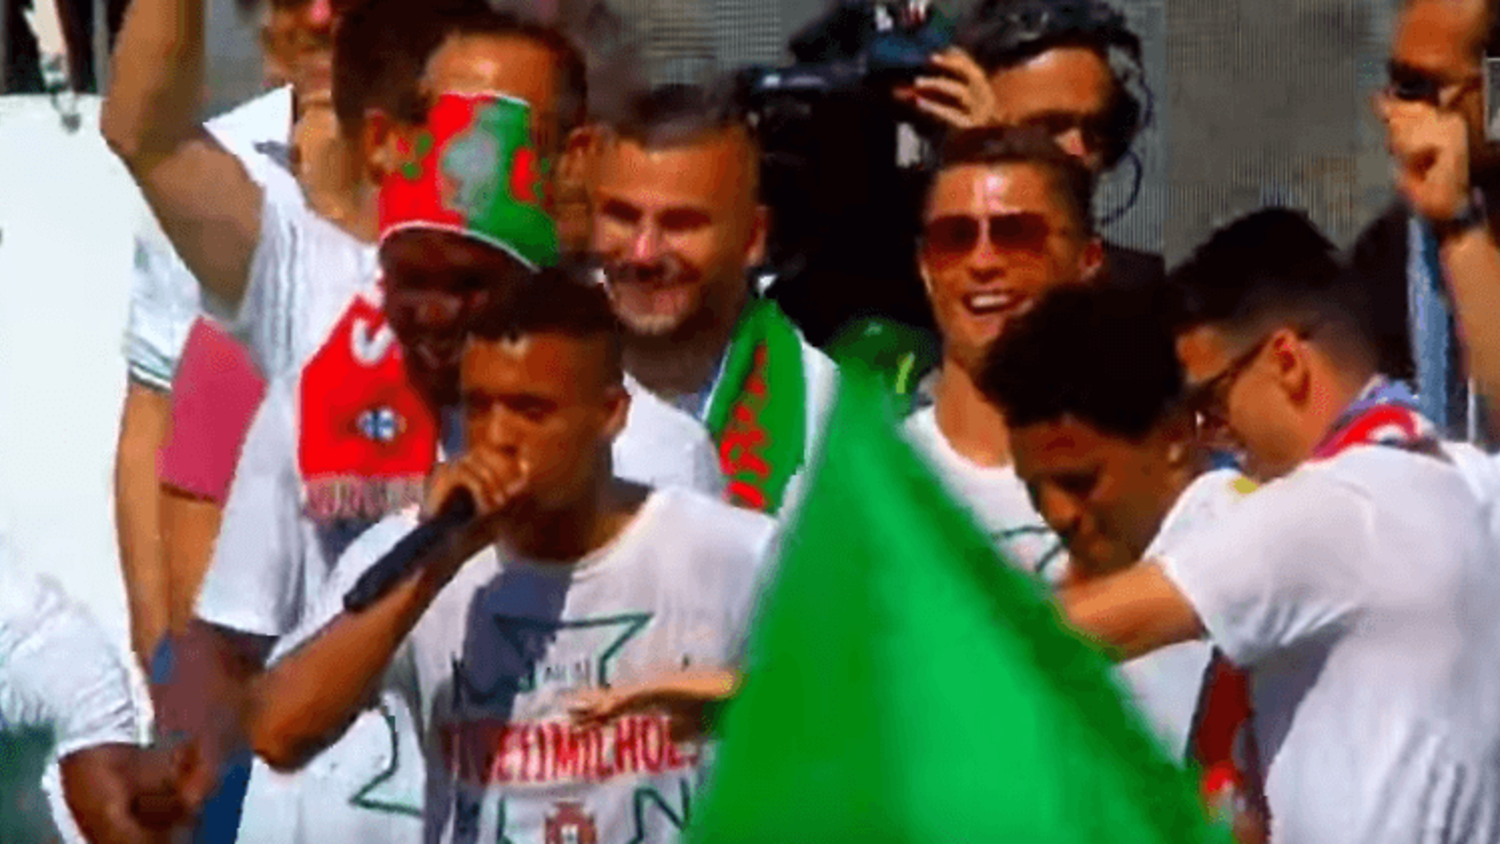 Nani & Renato Sanches show off their beatbox skills at Portugal Euro 2016 celebrations